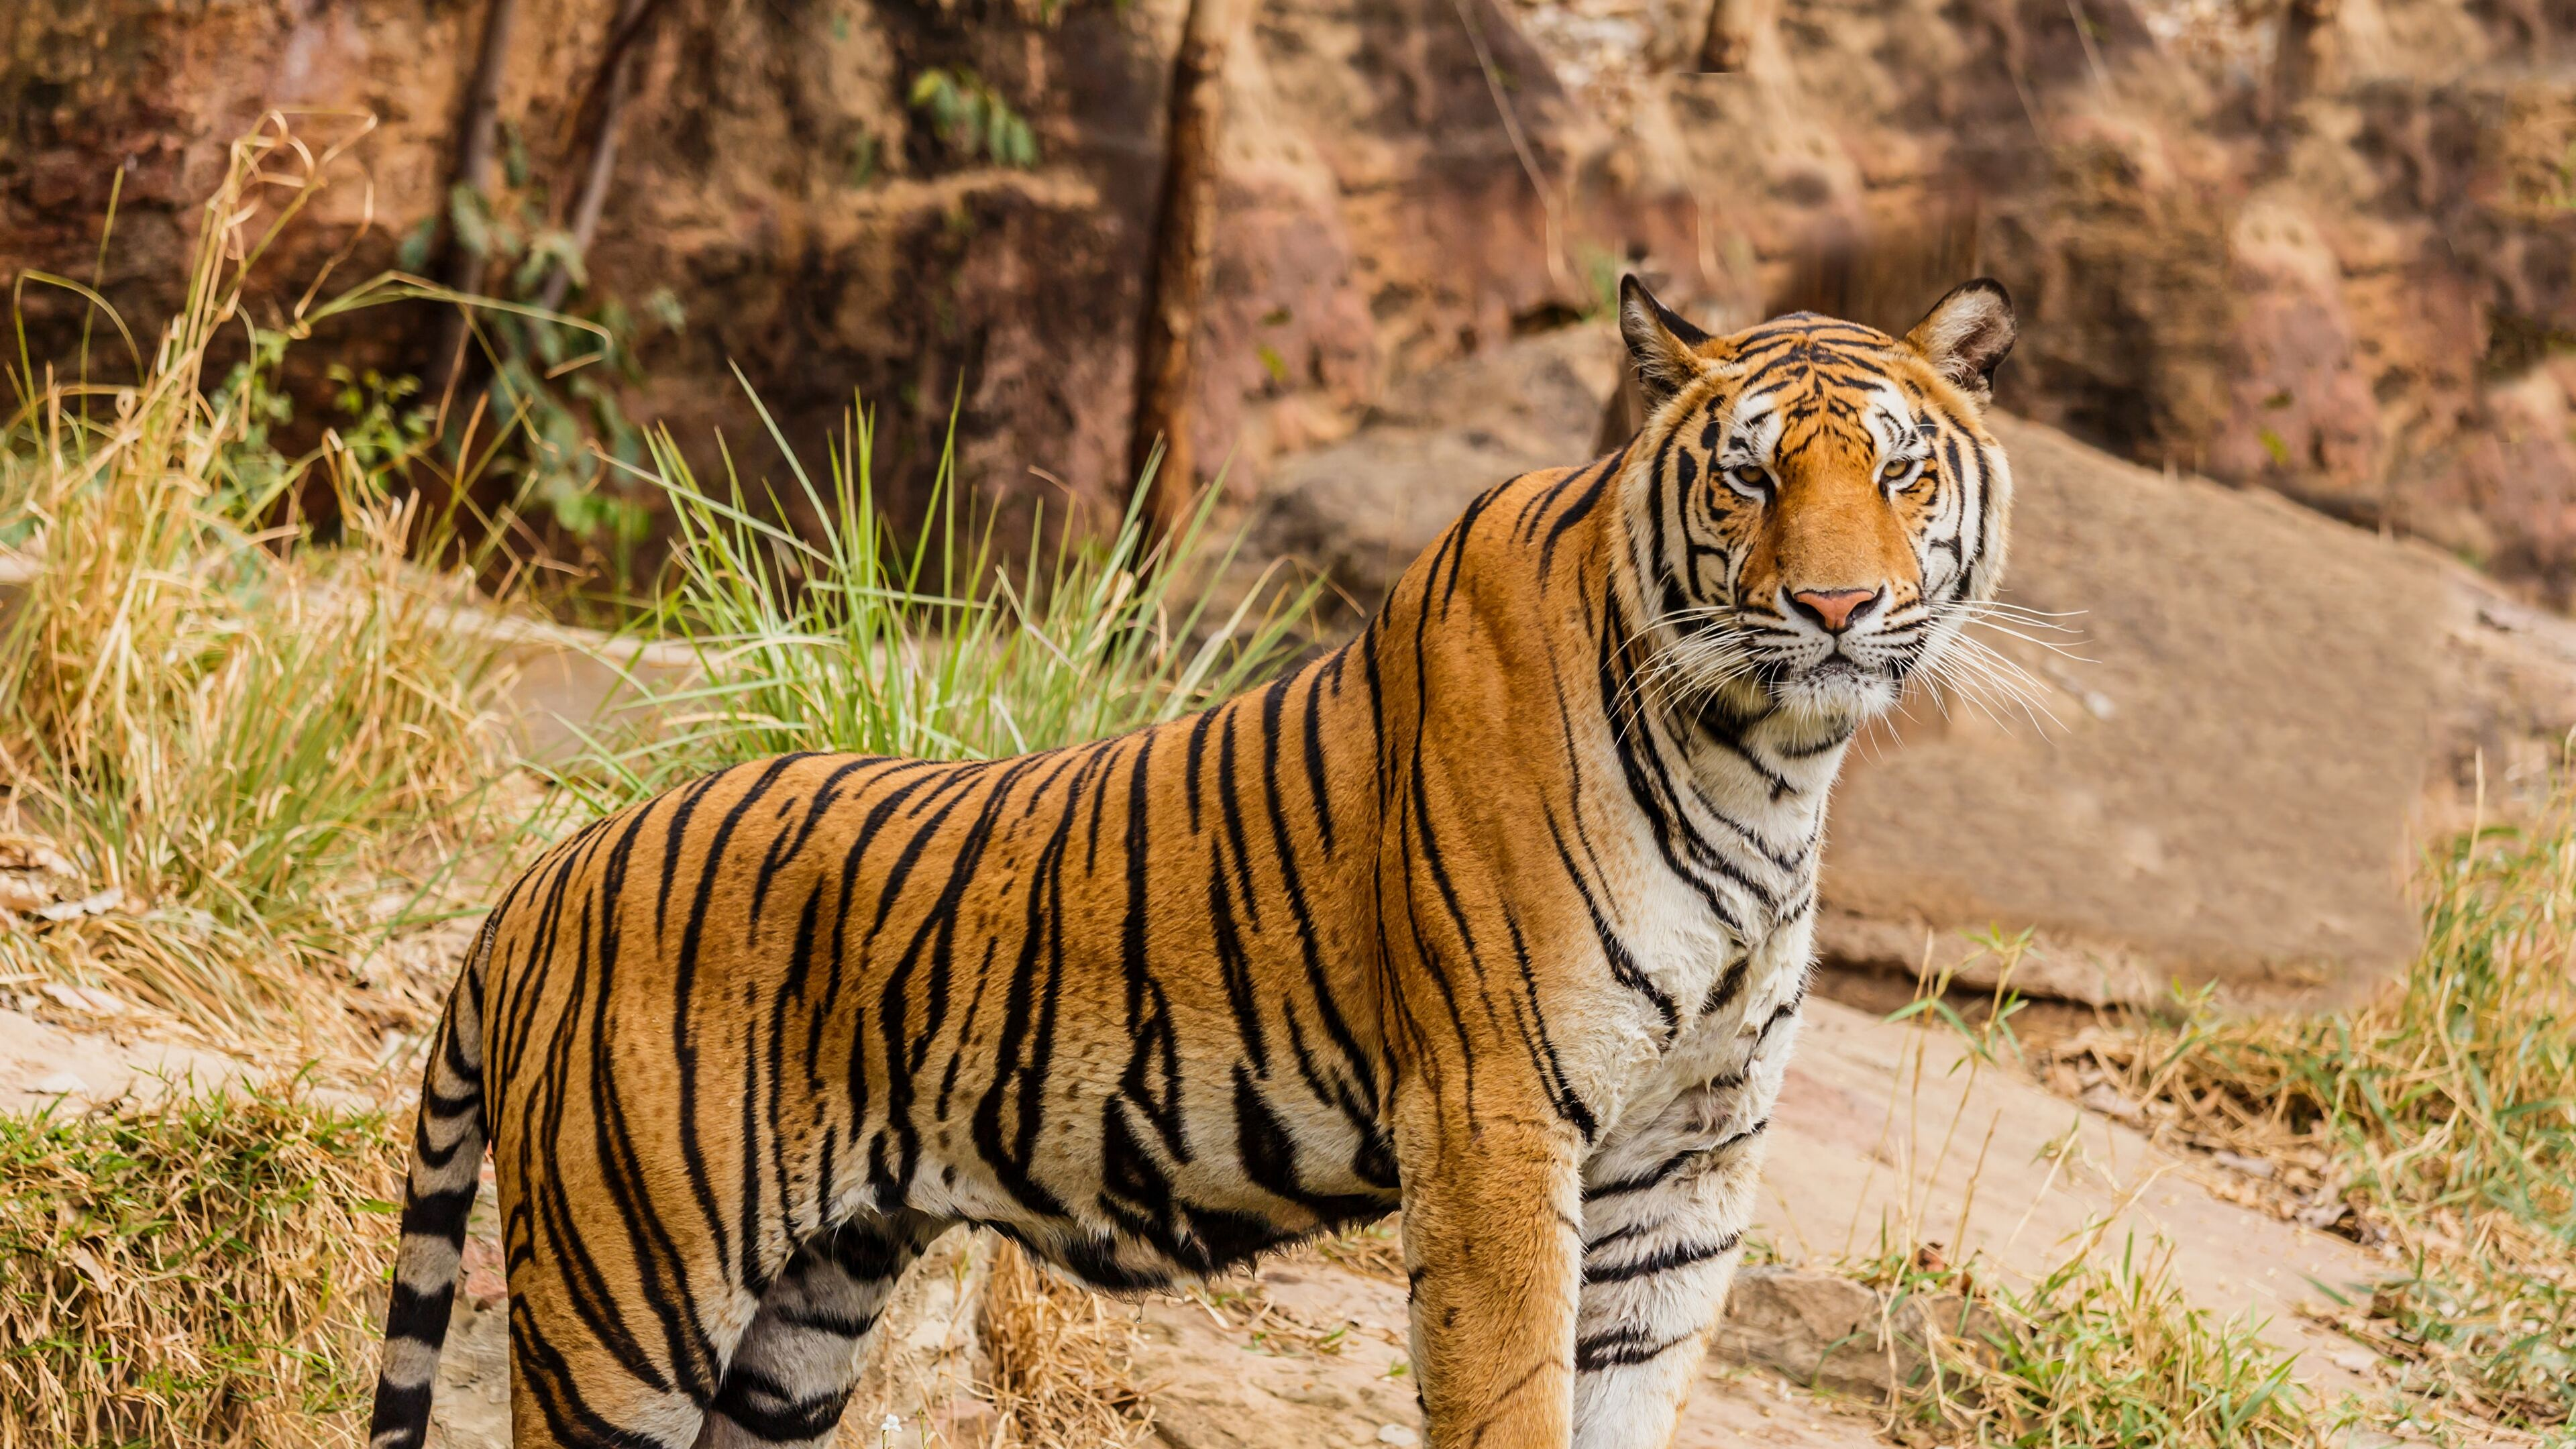 Tiger 4K wallpapers for your desktop or mobile screen free ...